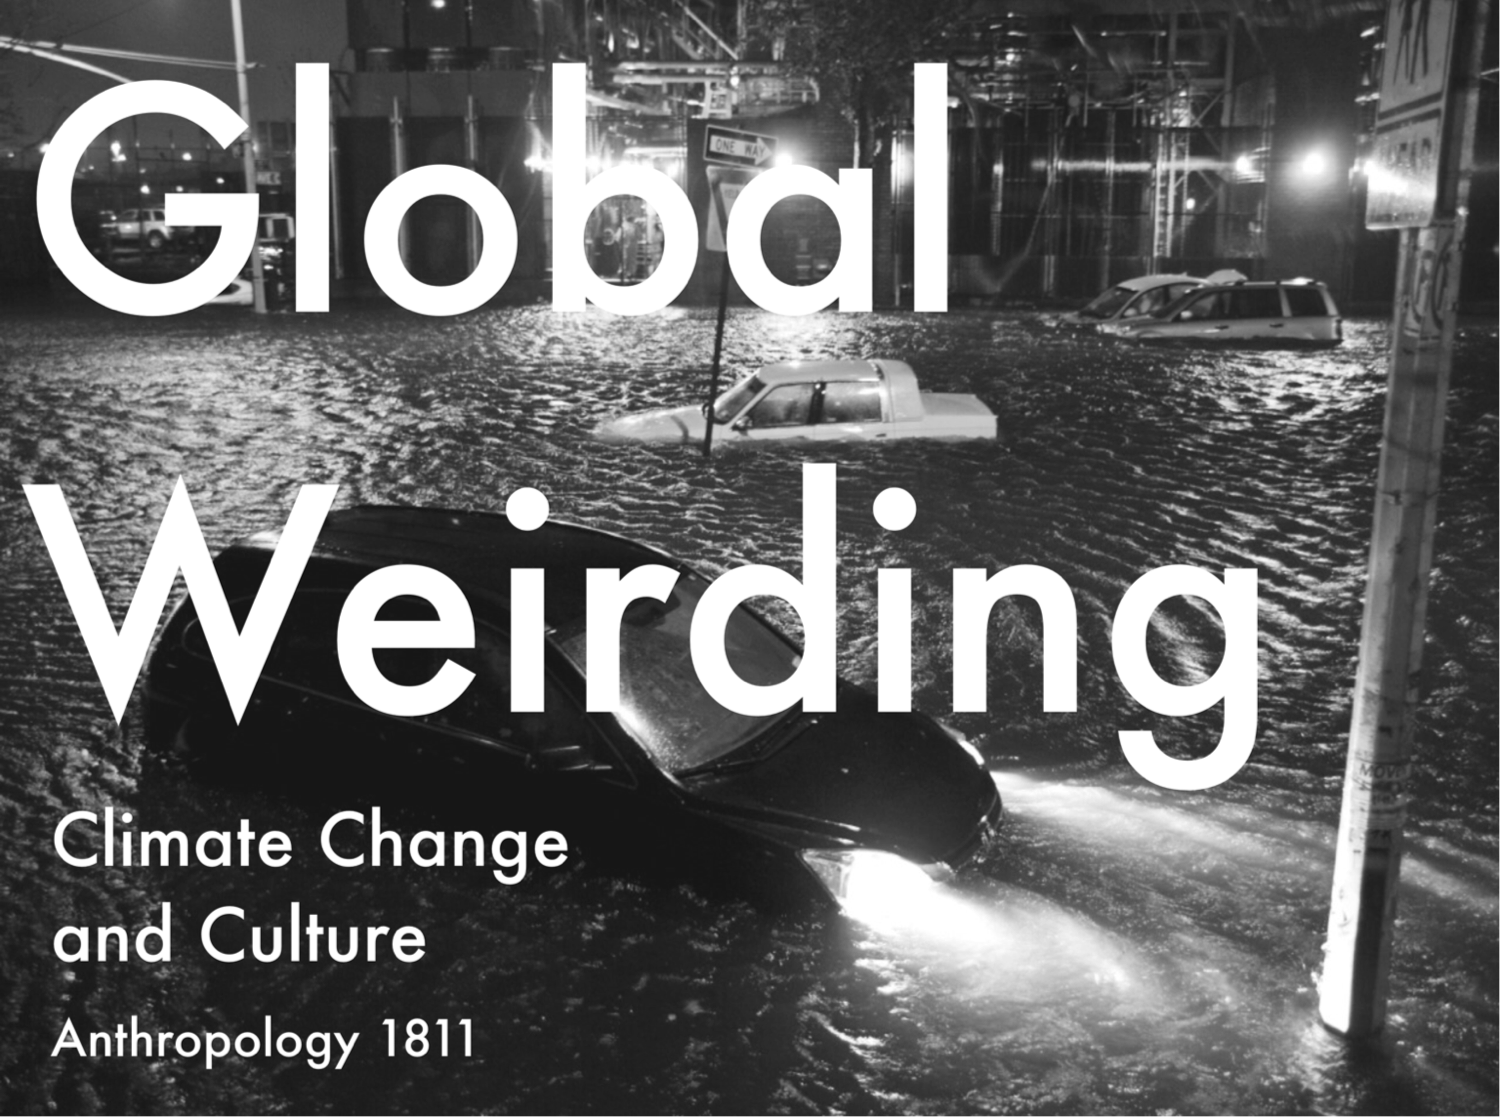 Global Weirding: Climate Change and Culture   Department of Anthropology, Cornell University  Superstorms in New York, floods in the Middle East, rain at the Winter Olympics. Humans used to be subject to the weather, but these days we weird the weather. Yet how do we know what we know about climate change? What are the cultural dimensions of our sense of its reality? In this course, we shall examine the ongoing transformation of climate change from a remote artifact of scientific knowledge into a pervasive imaginary resource of contemporary thinking and religiosity. Readings will range from the ethnographic study of carbon trading to Nathaniel Rich's fictional account of near-future Manhattan reclaimed by the sea. Writing assignments will emphasize the ability to juxtapose scholarly research from history, anthropology, and philosophy with a wide range of non-academic documents like newspapers, political speeches, legal briefings, military intelligence, and corporate literature